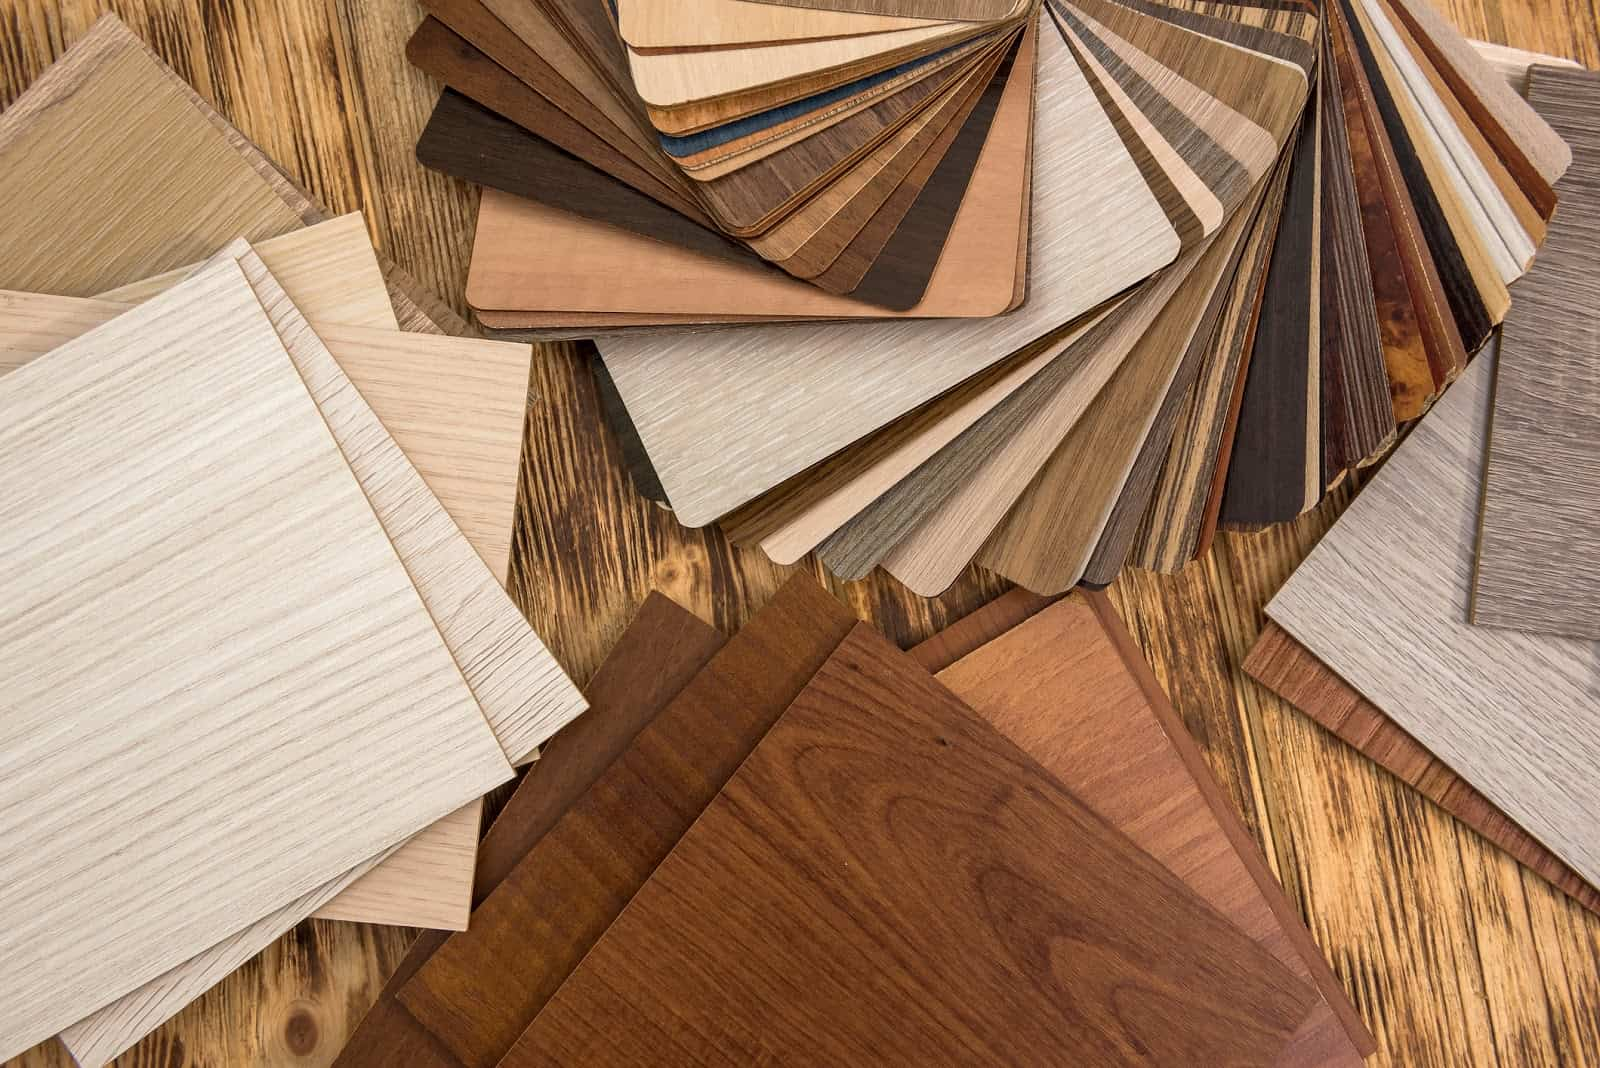 wooden color swatch choosing wood material for housing project.